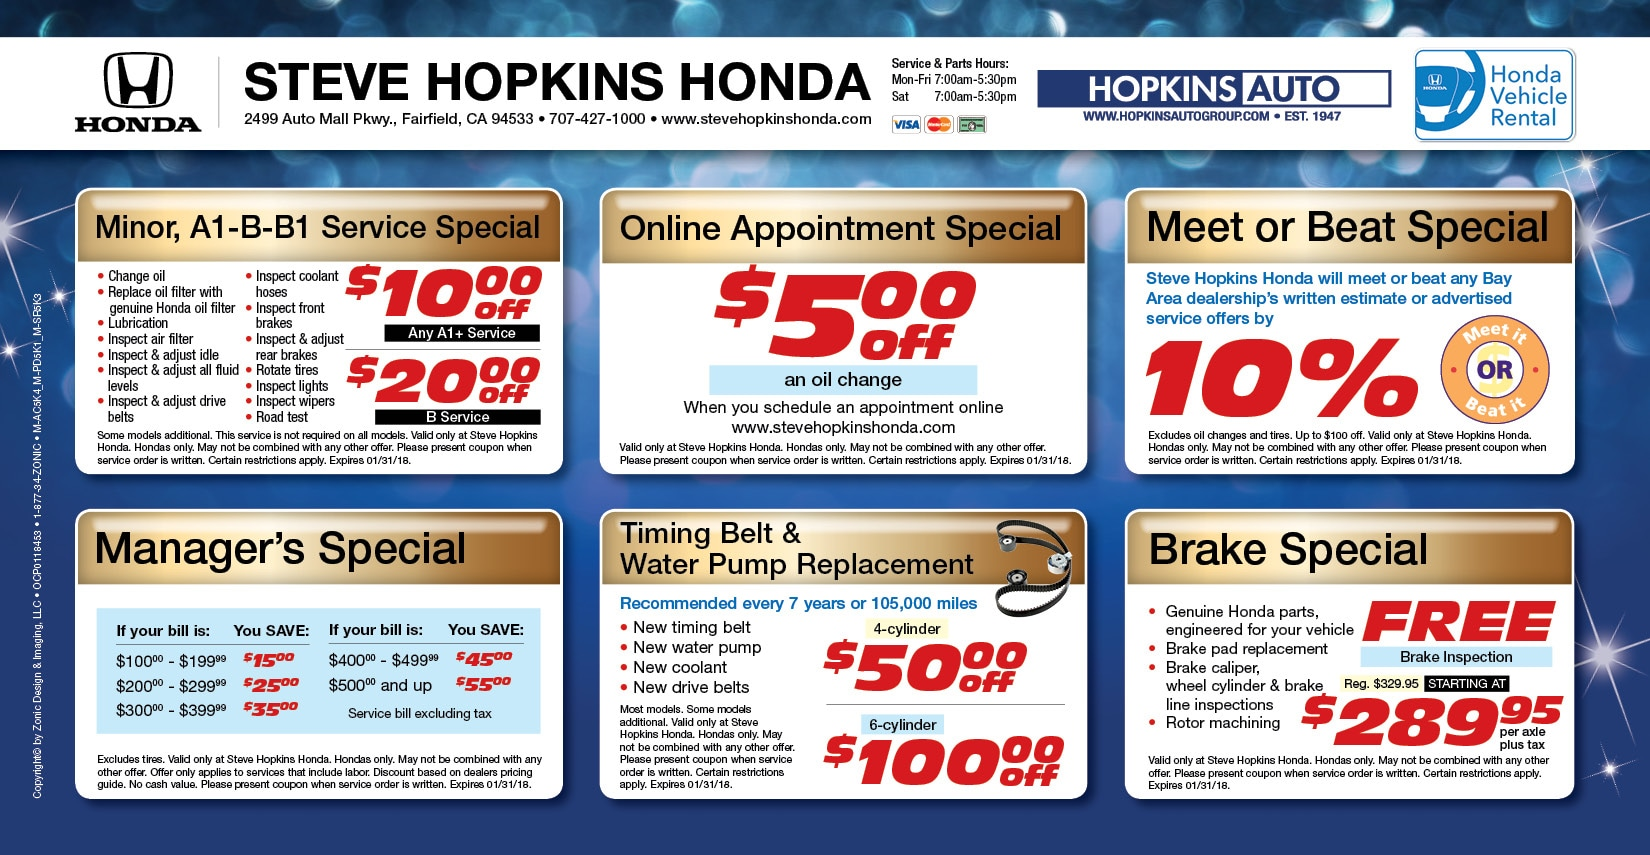 Honda Service Coupons Fairfield Service Specials Solano County